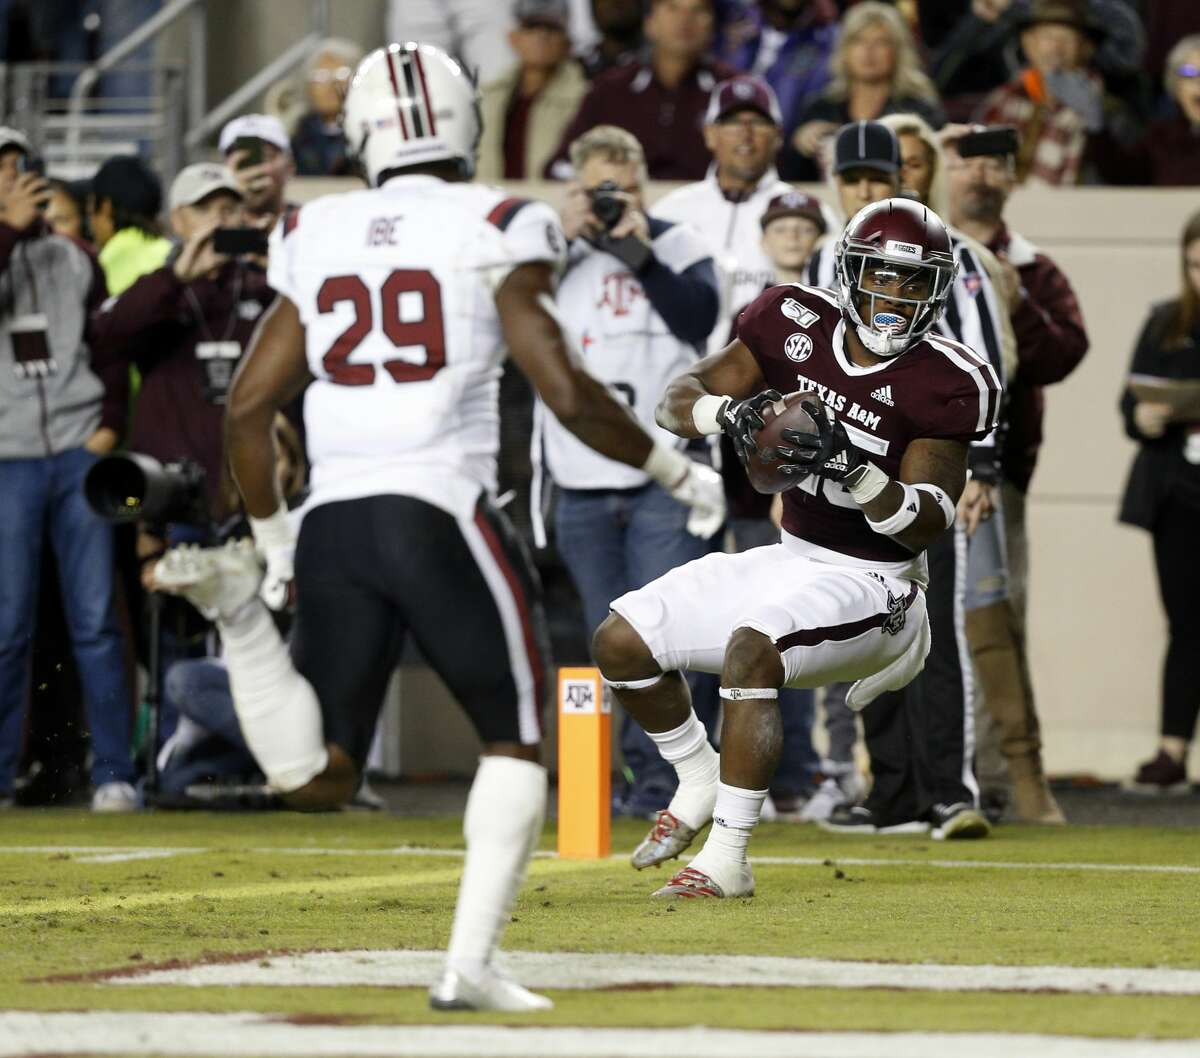 COLLEGE STATION, TEXAS - NOVEMBER 16: Cordarrian Richardson #25 of the Texas A&M Aggies catches a 17-yard pass for a touchdown during the second quarter against the South Carolina Gamecocks at Kyle Field on November 16, 2019 in College Station, Texas. (Photo by Bob Levey/Getty Images)